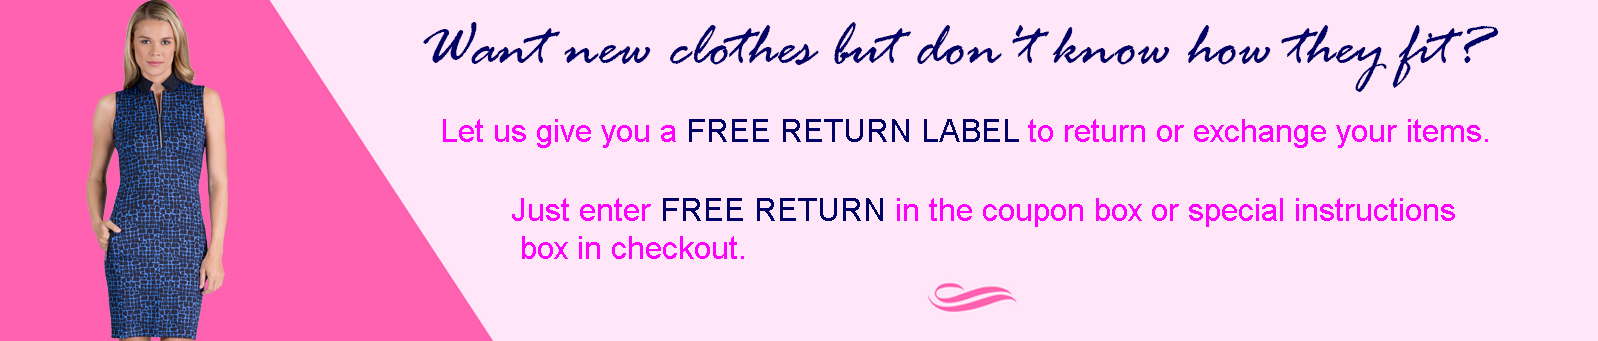 Lori's Golf Shoppe - Free Returns